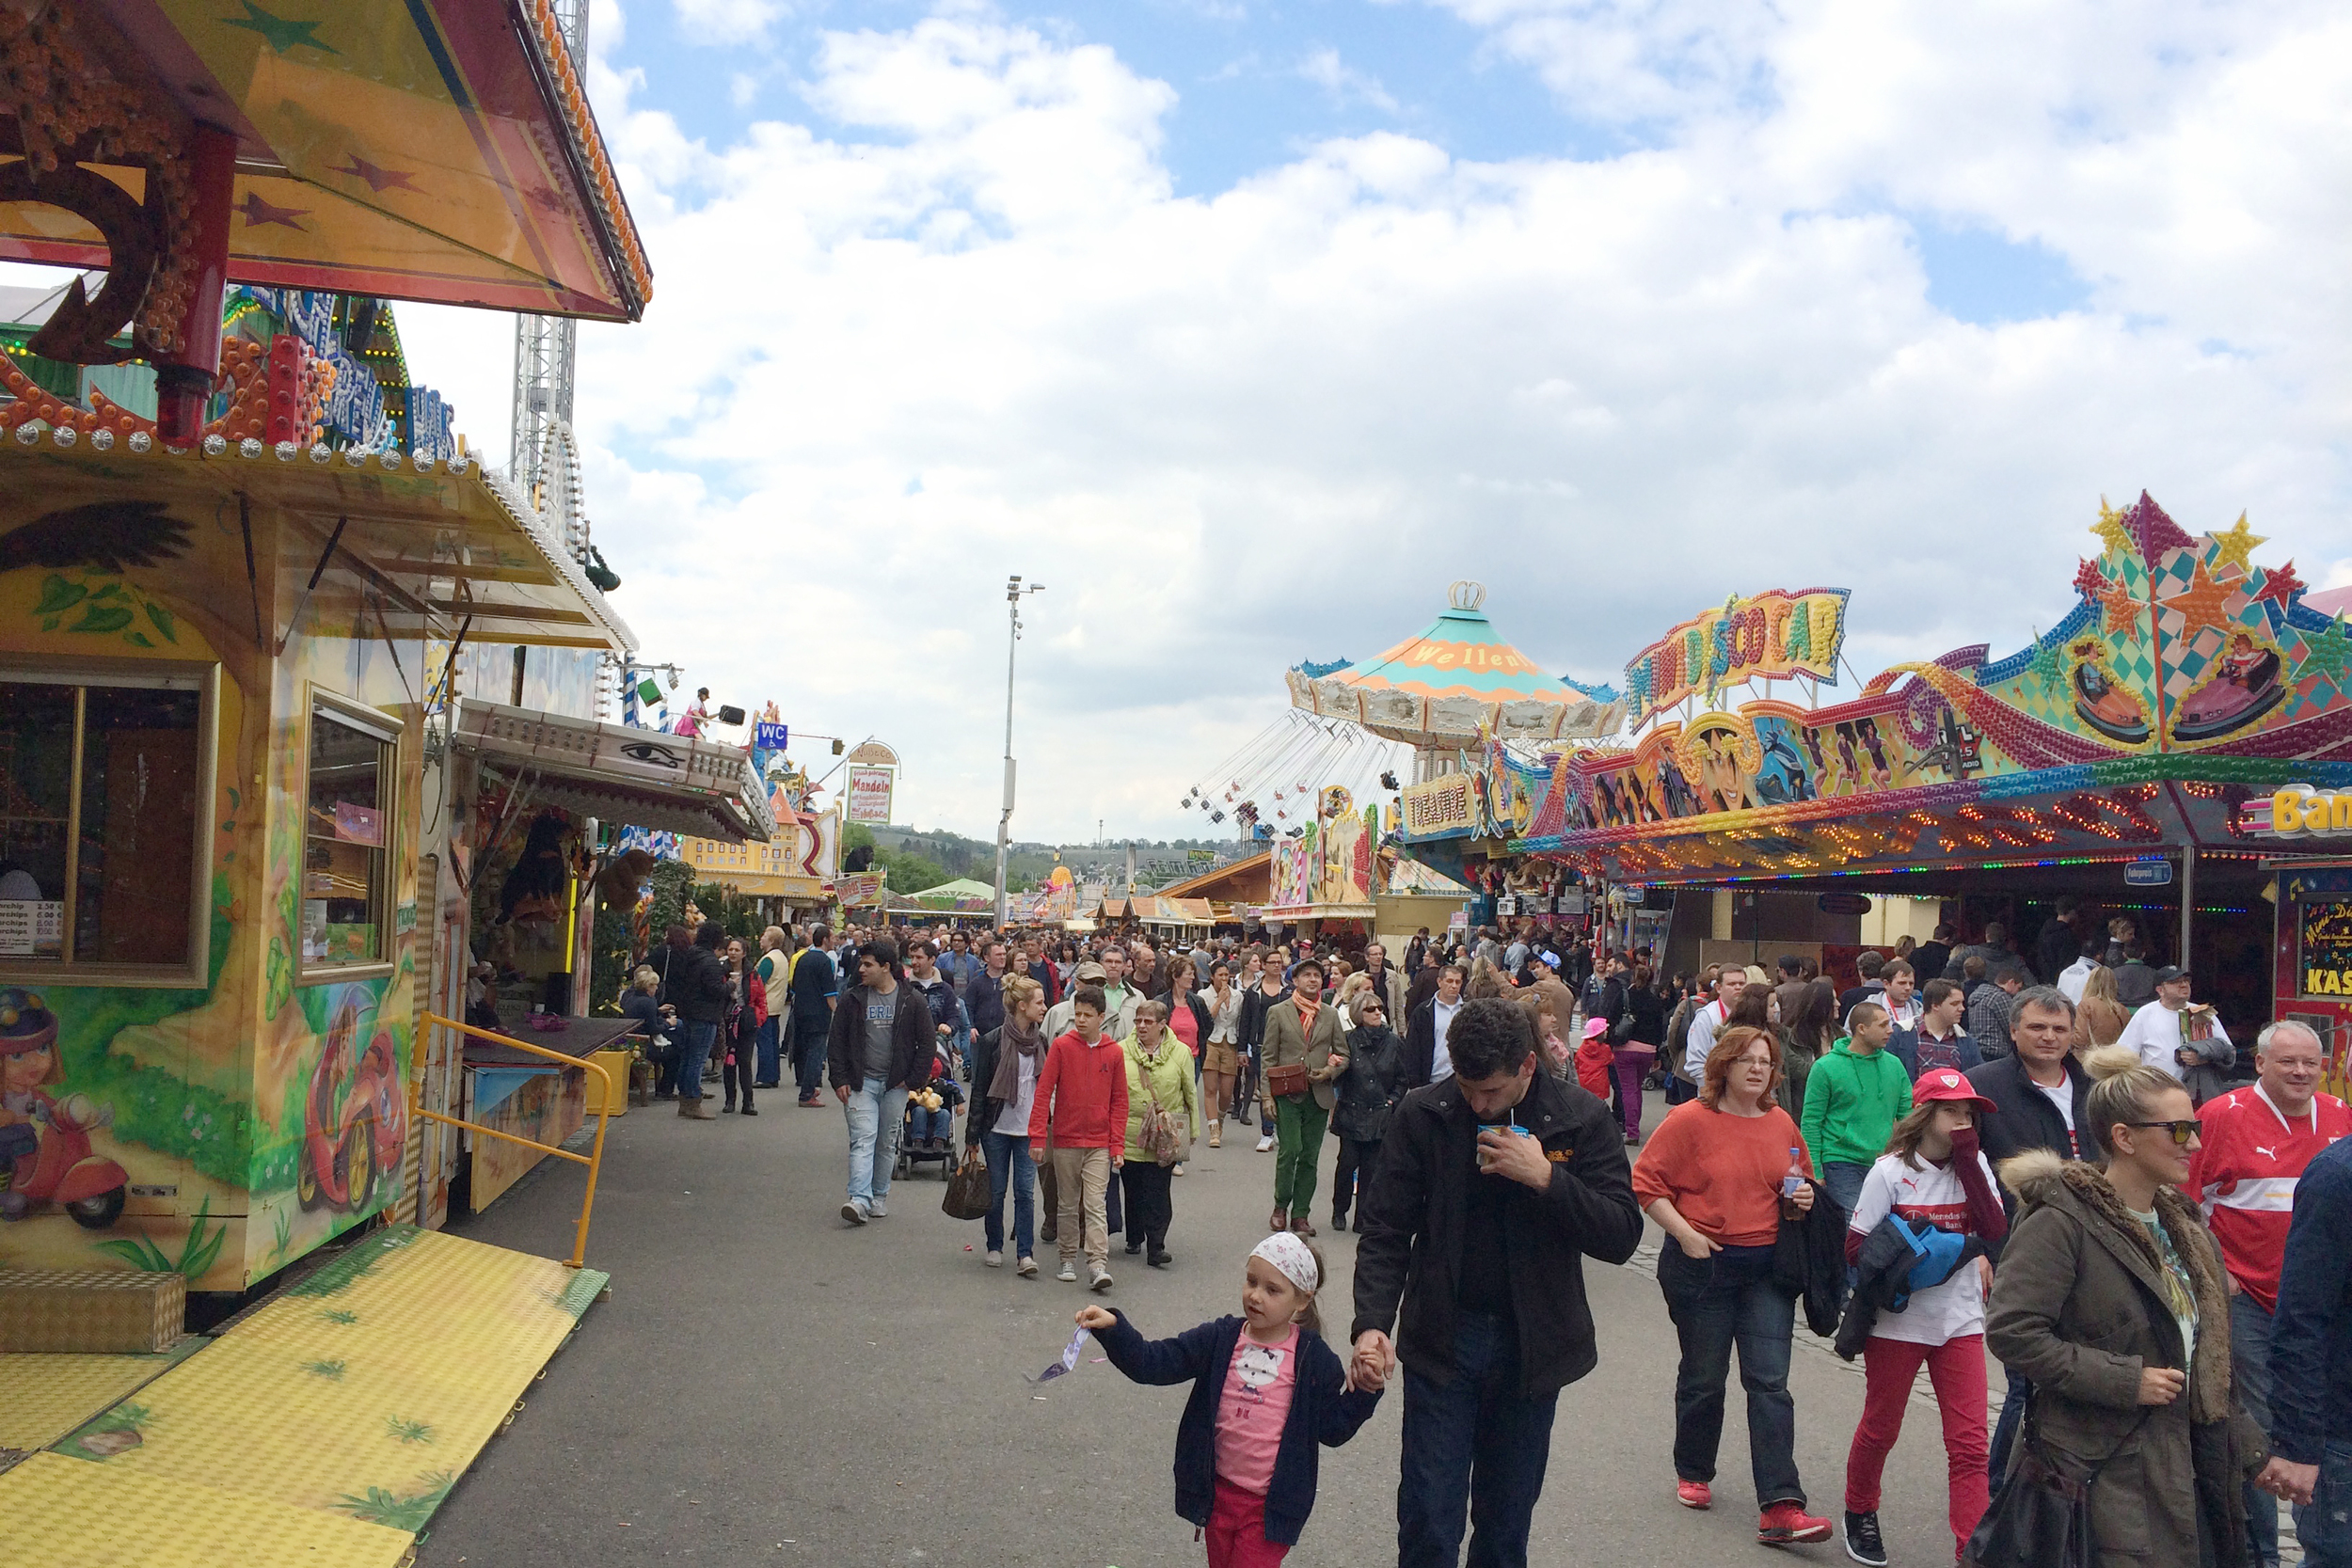 So, I thought Frühlingsfest would be flower carts and eggs and stuff. It turns out it is a big fair—with roller coasters, games, crowds, music, and food—who knew?